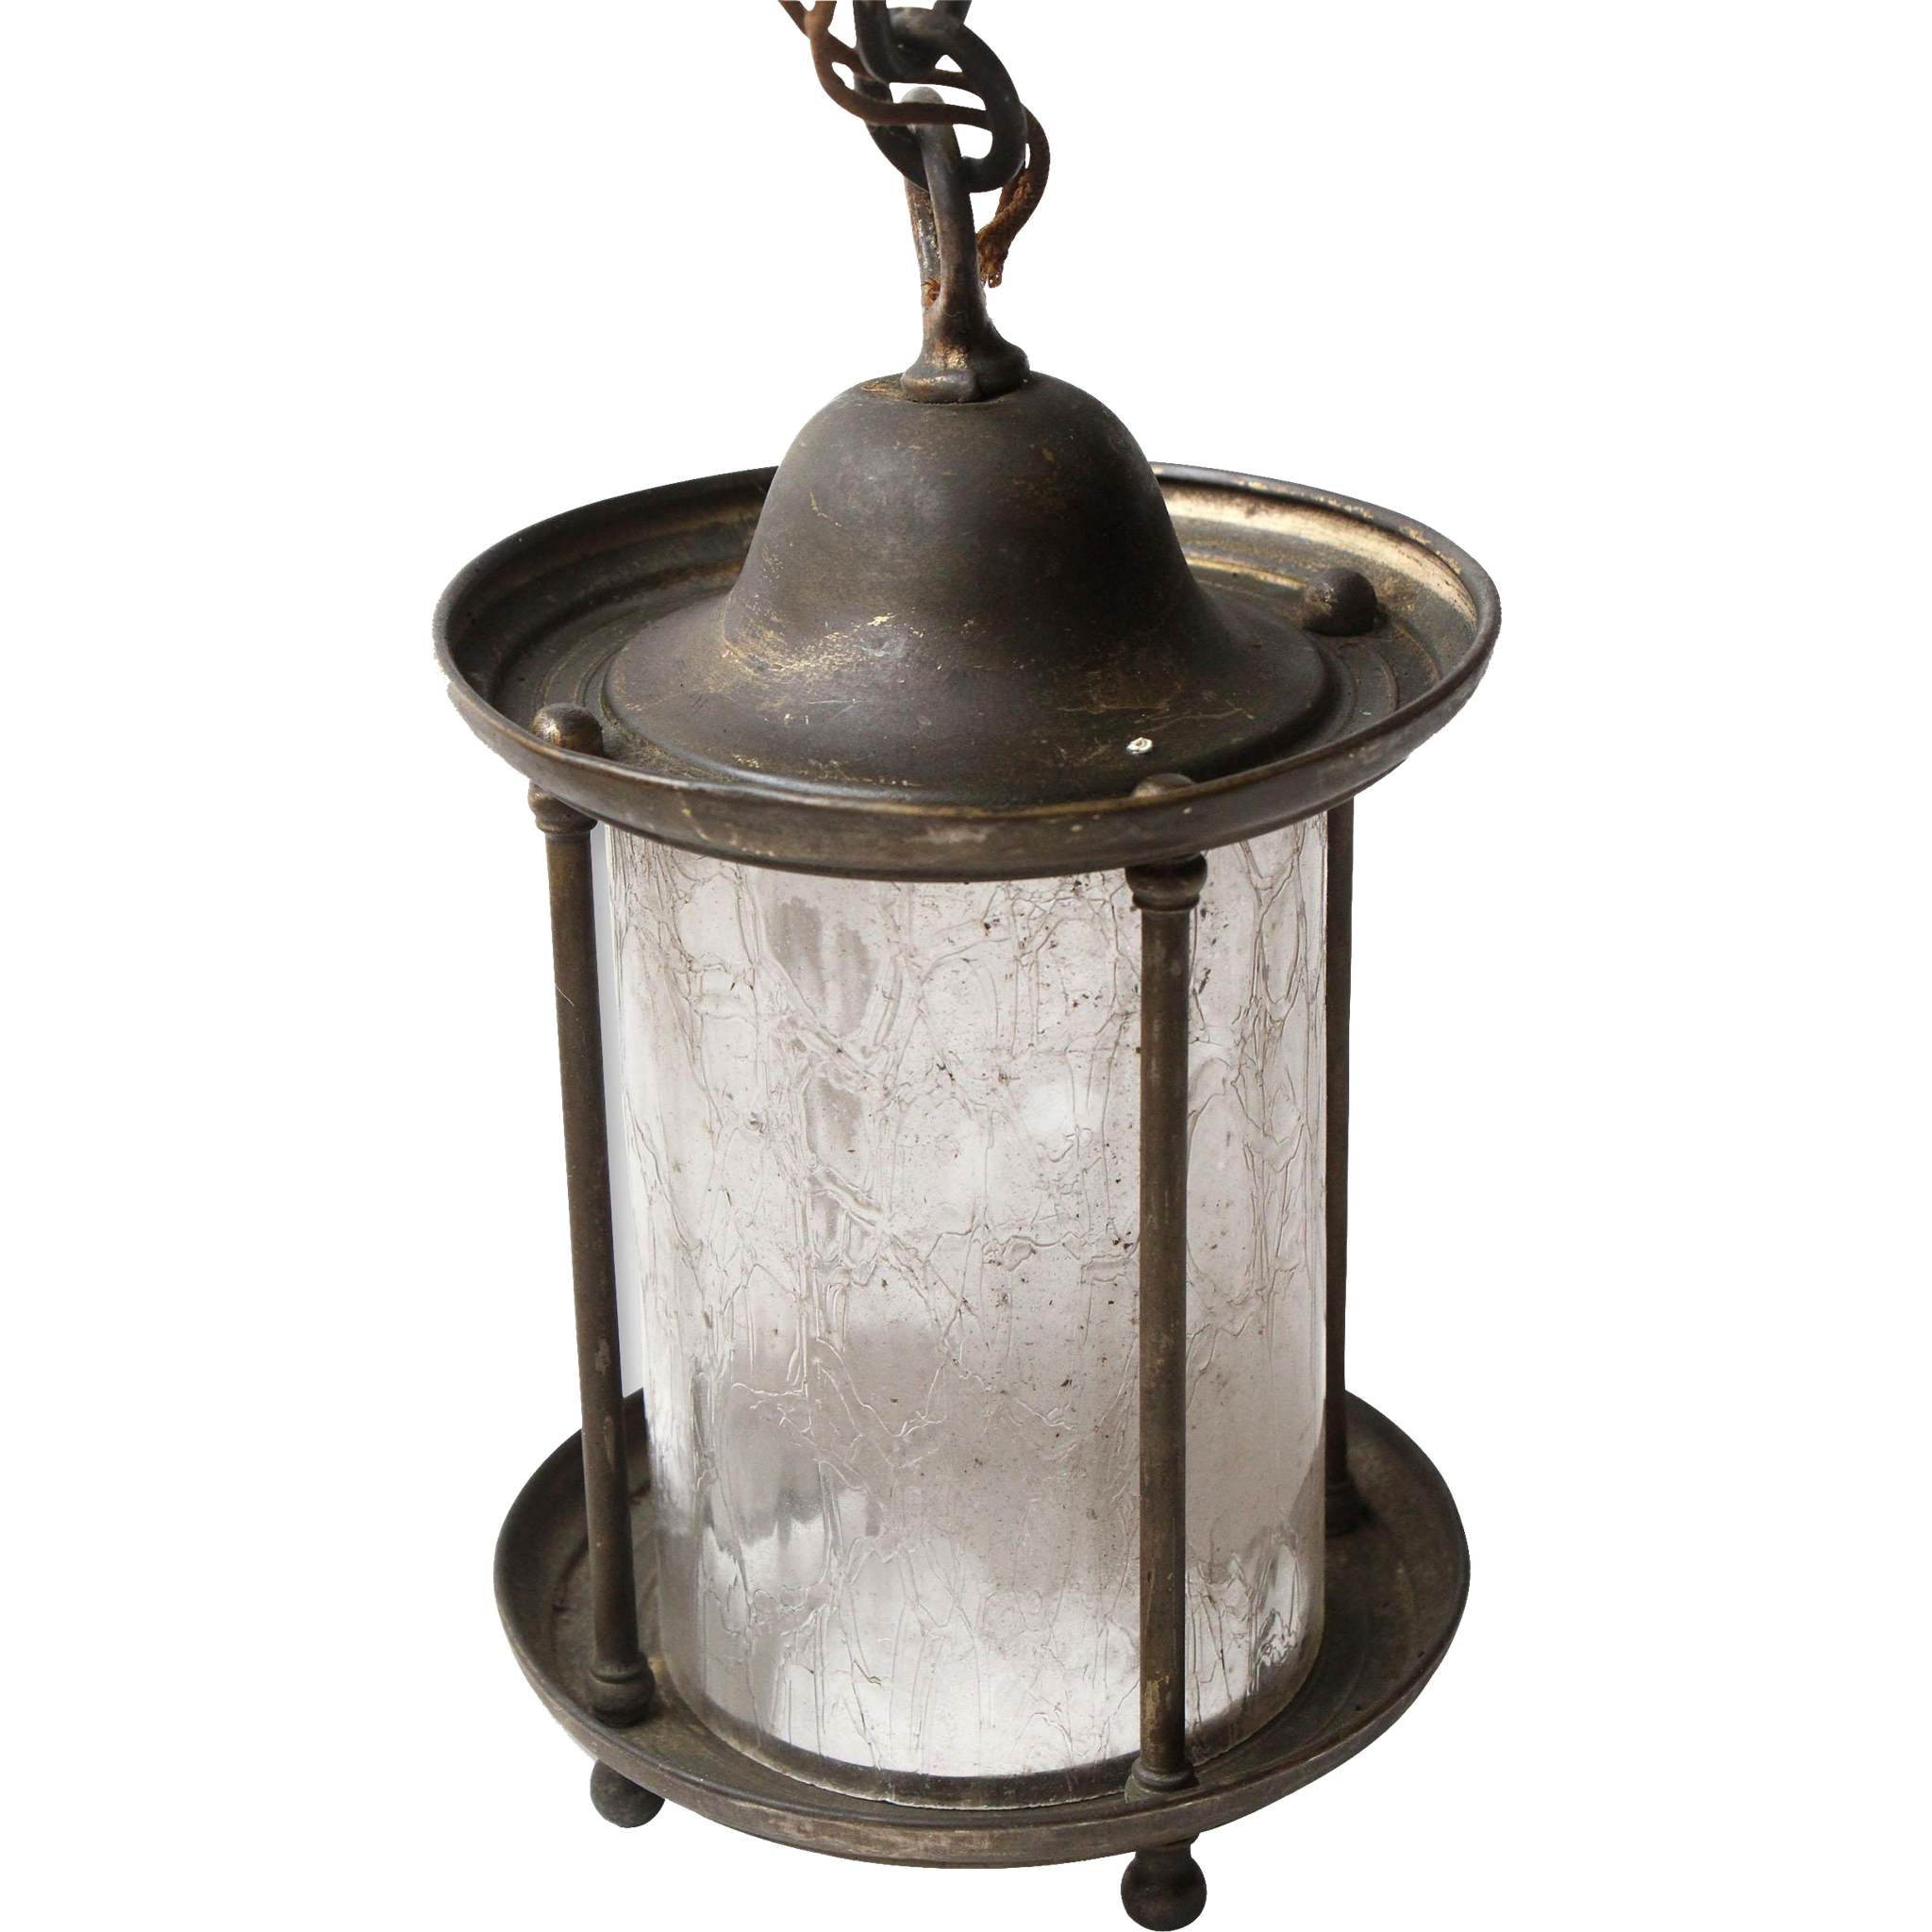 Brass lantern with textured glass